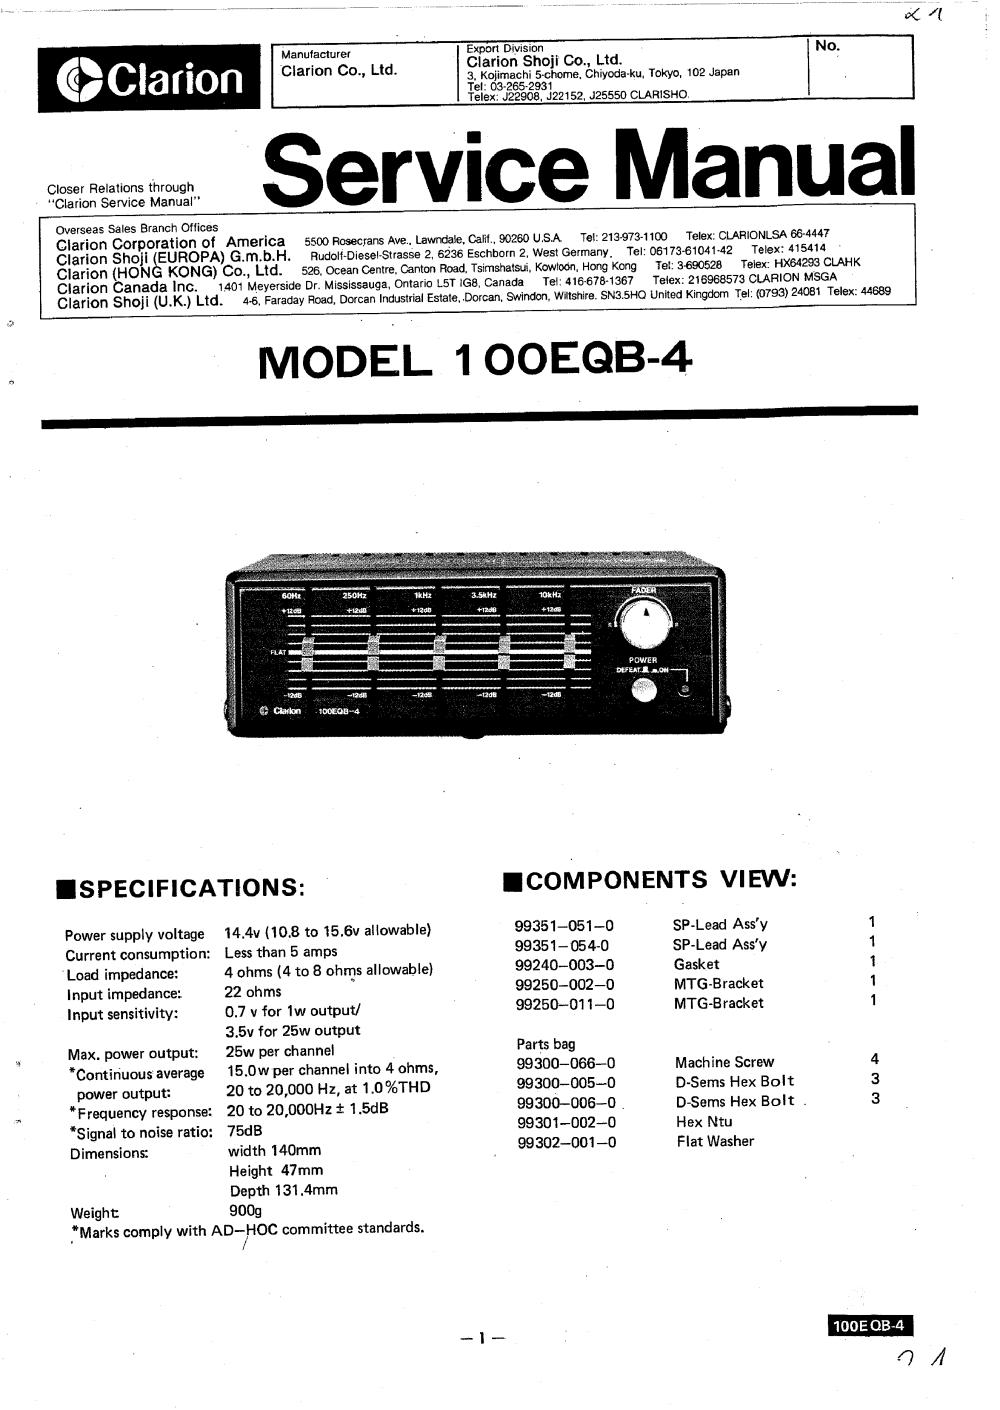 medium resolution of clarion 100eqb 4 service manual